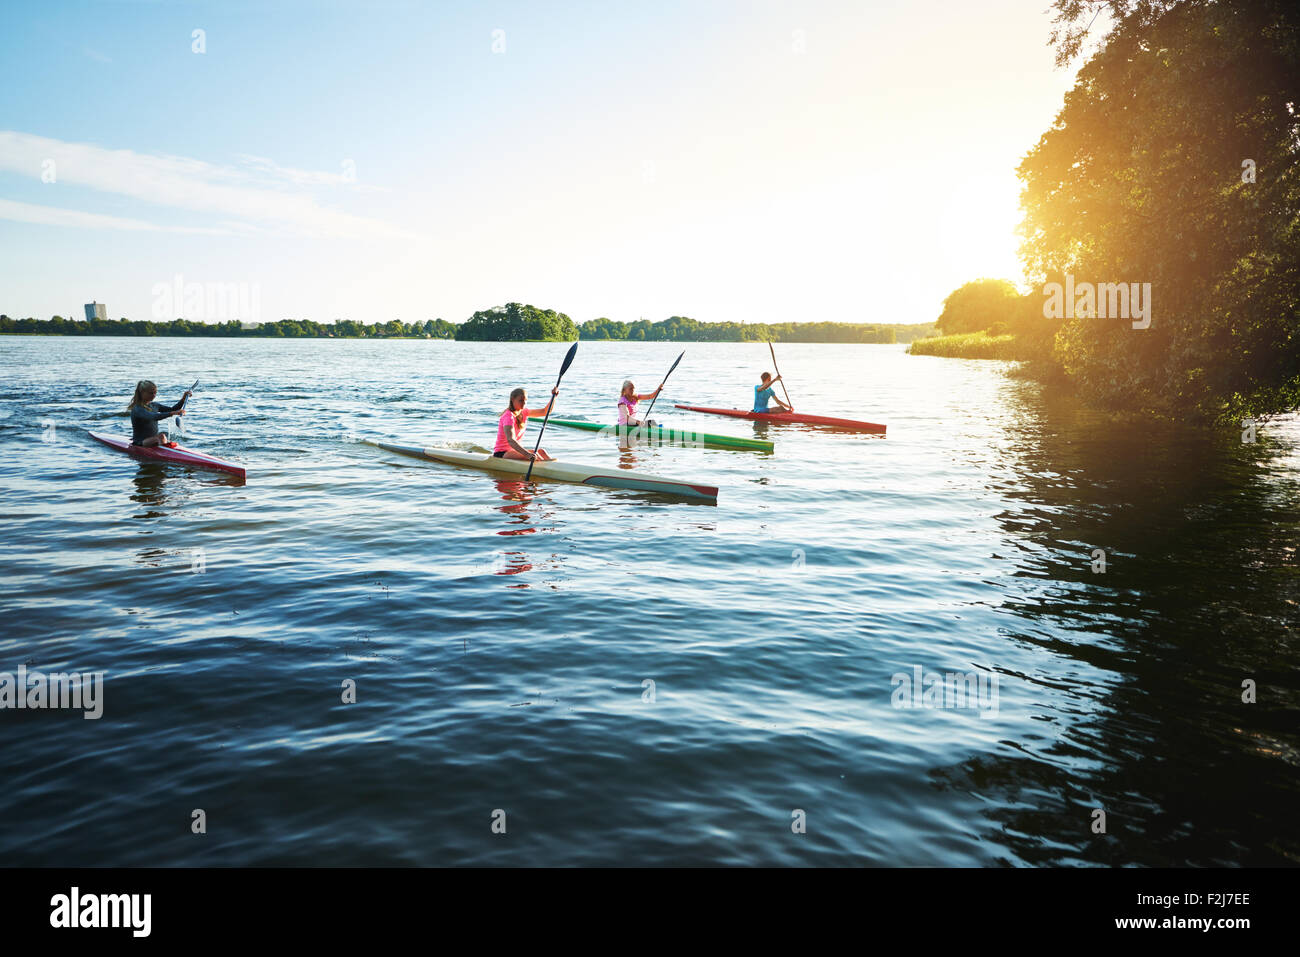 Sports d'équipe de course sur le lac kayaks Photo Stock